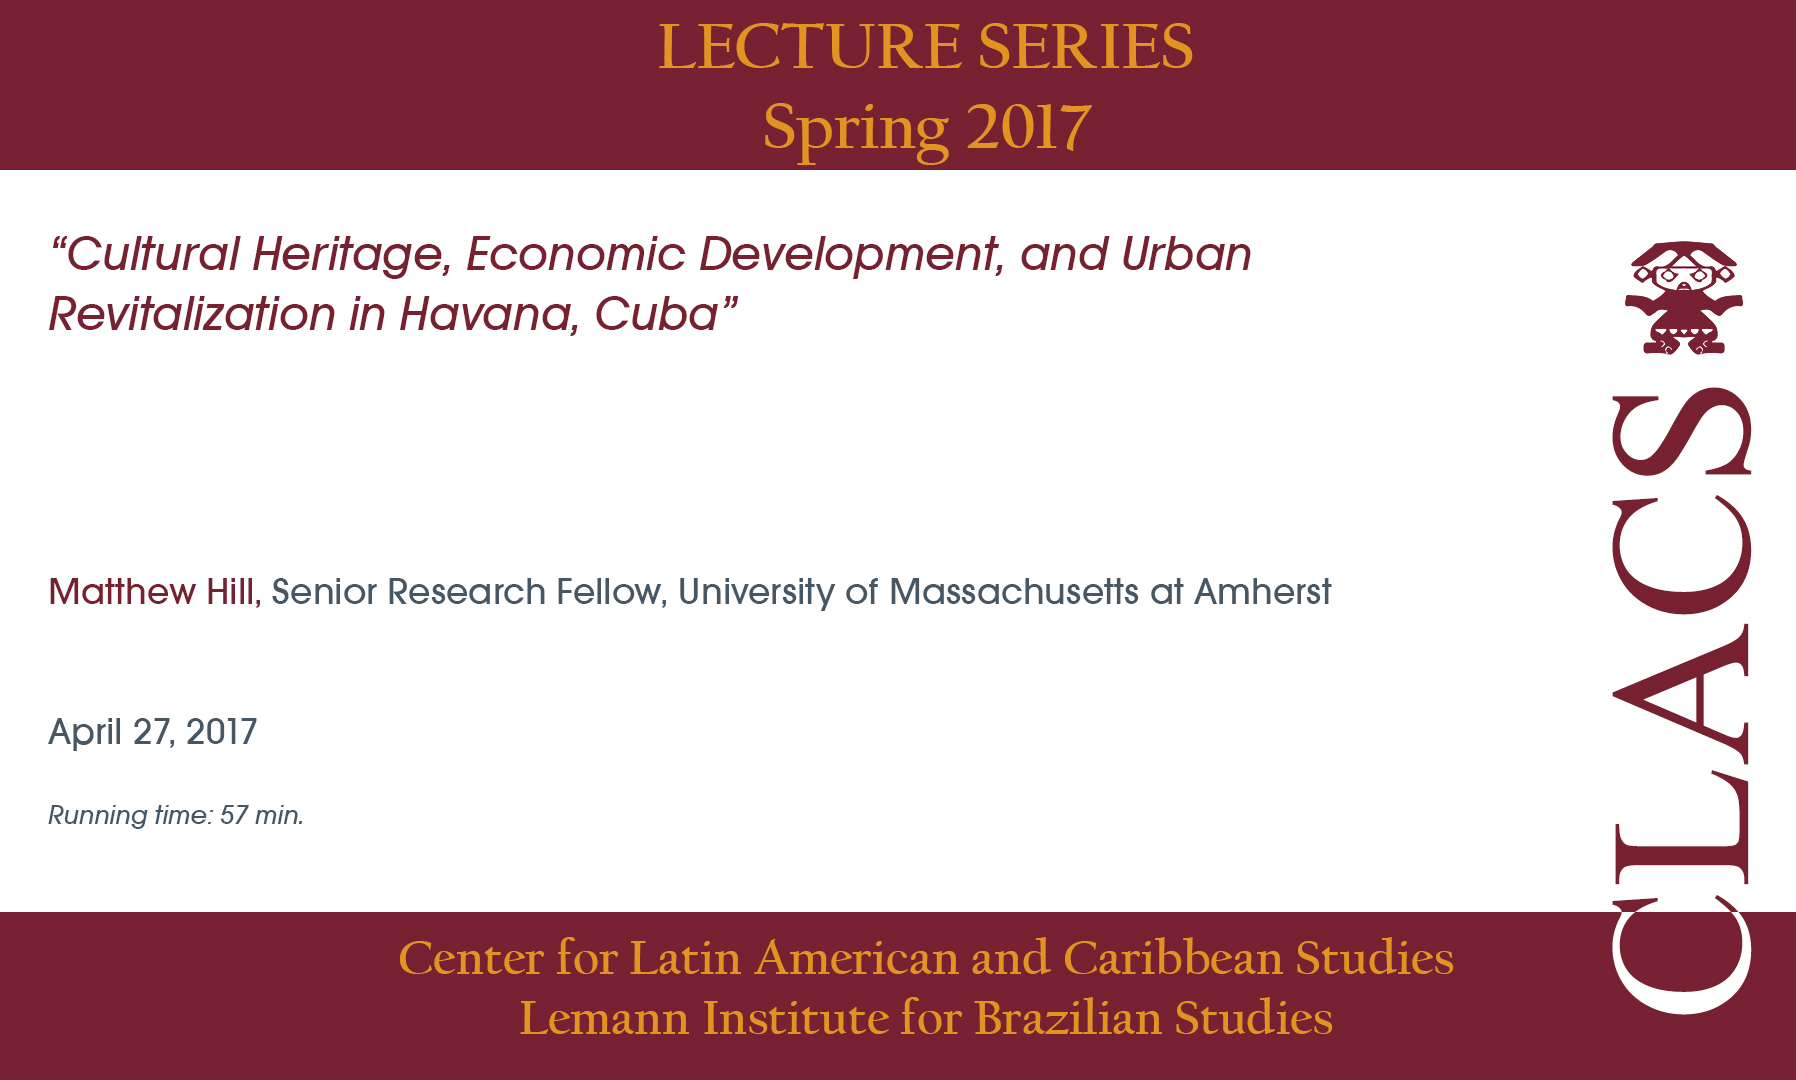 Cultural Heritage, Economic Development, and Urban Revitalization in Havana, Cuba